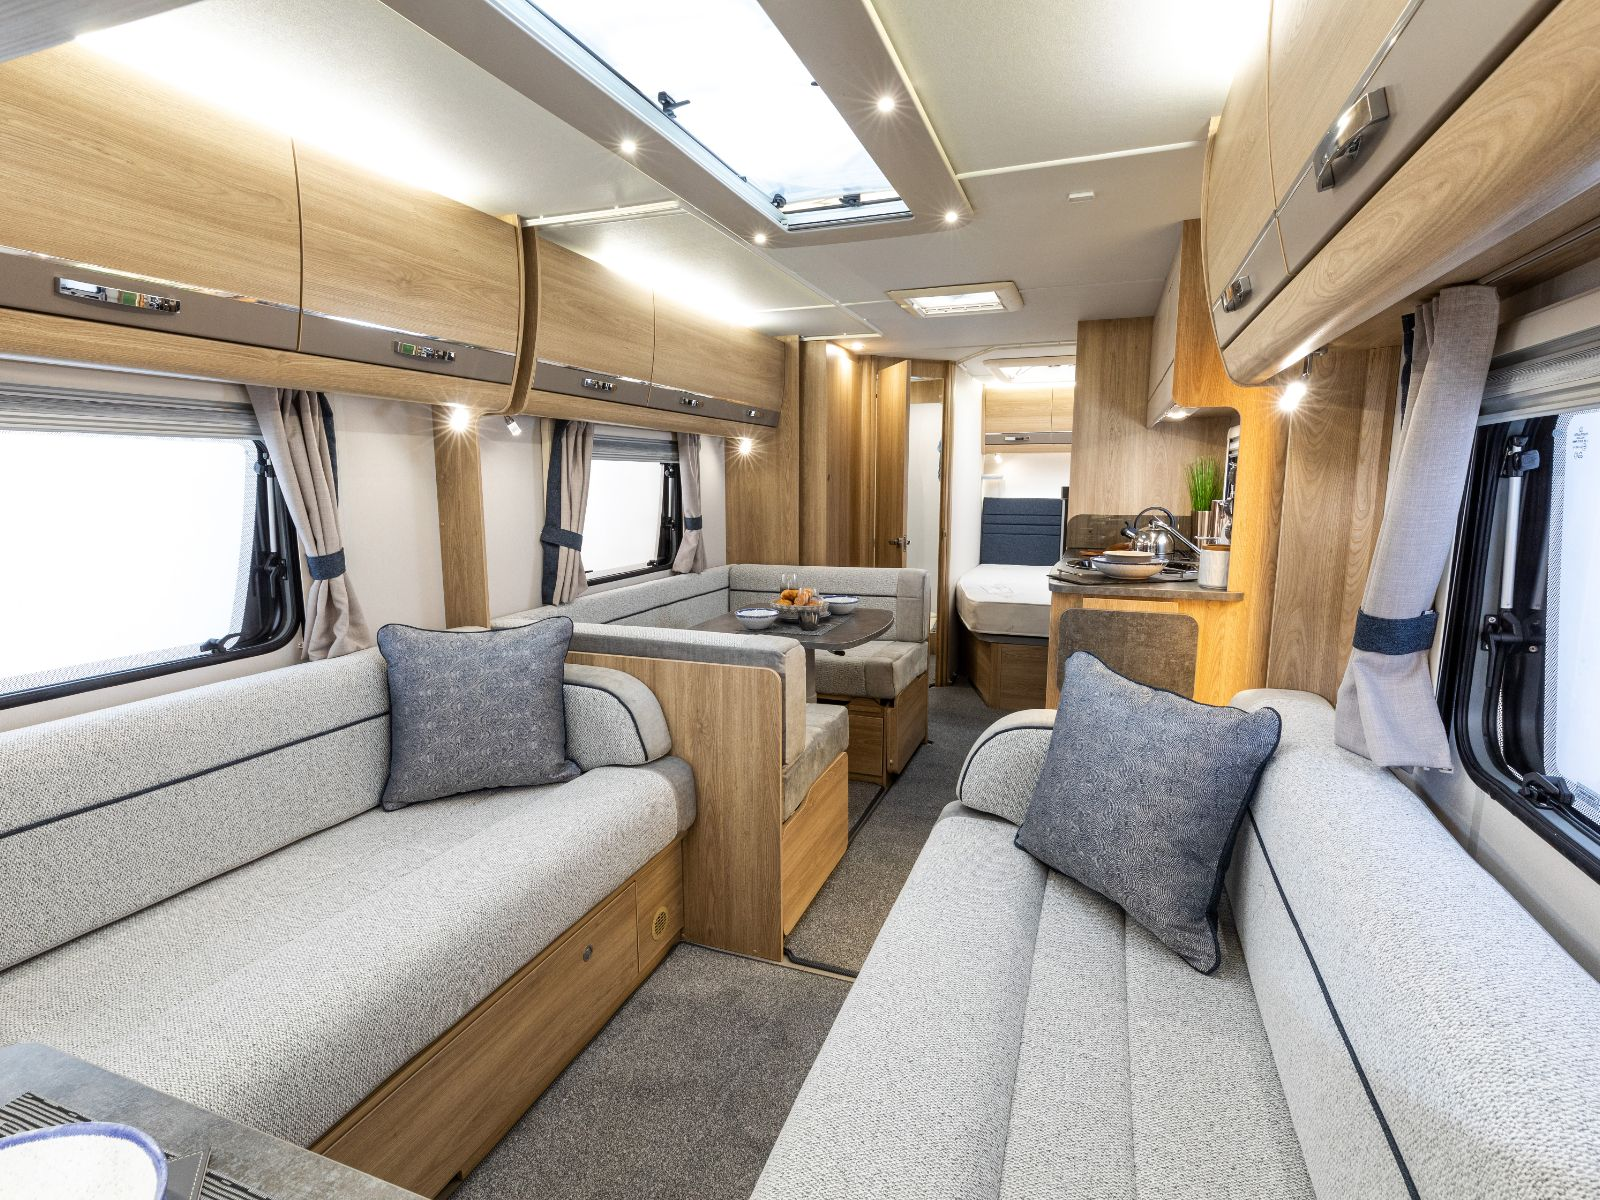 Chatsworth Caravan Lounge Are with Dining Area and Kitchen View'